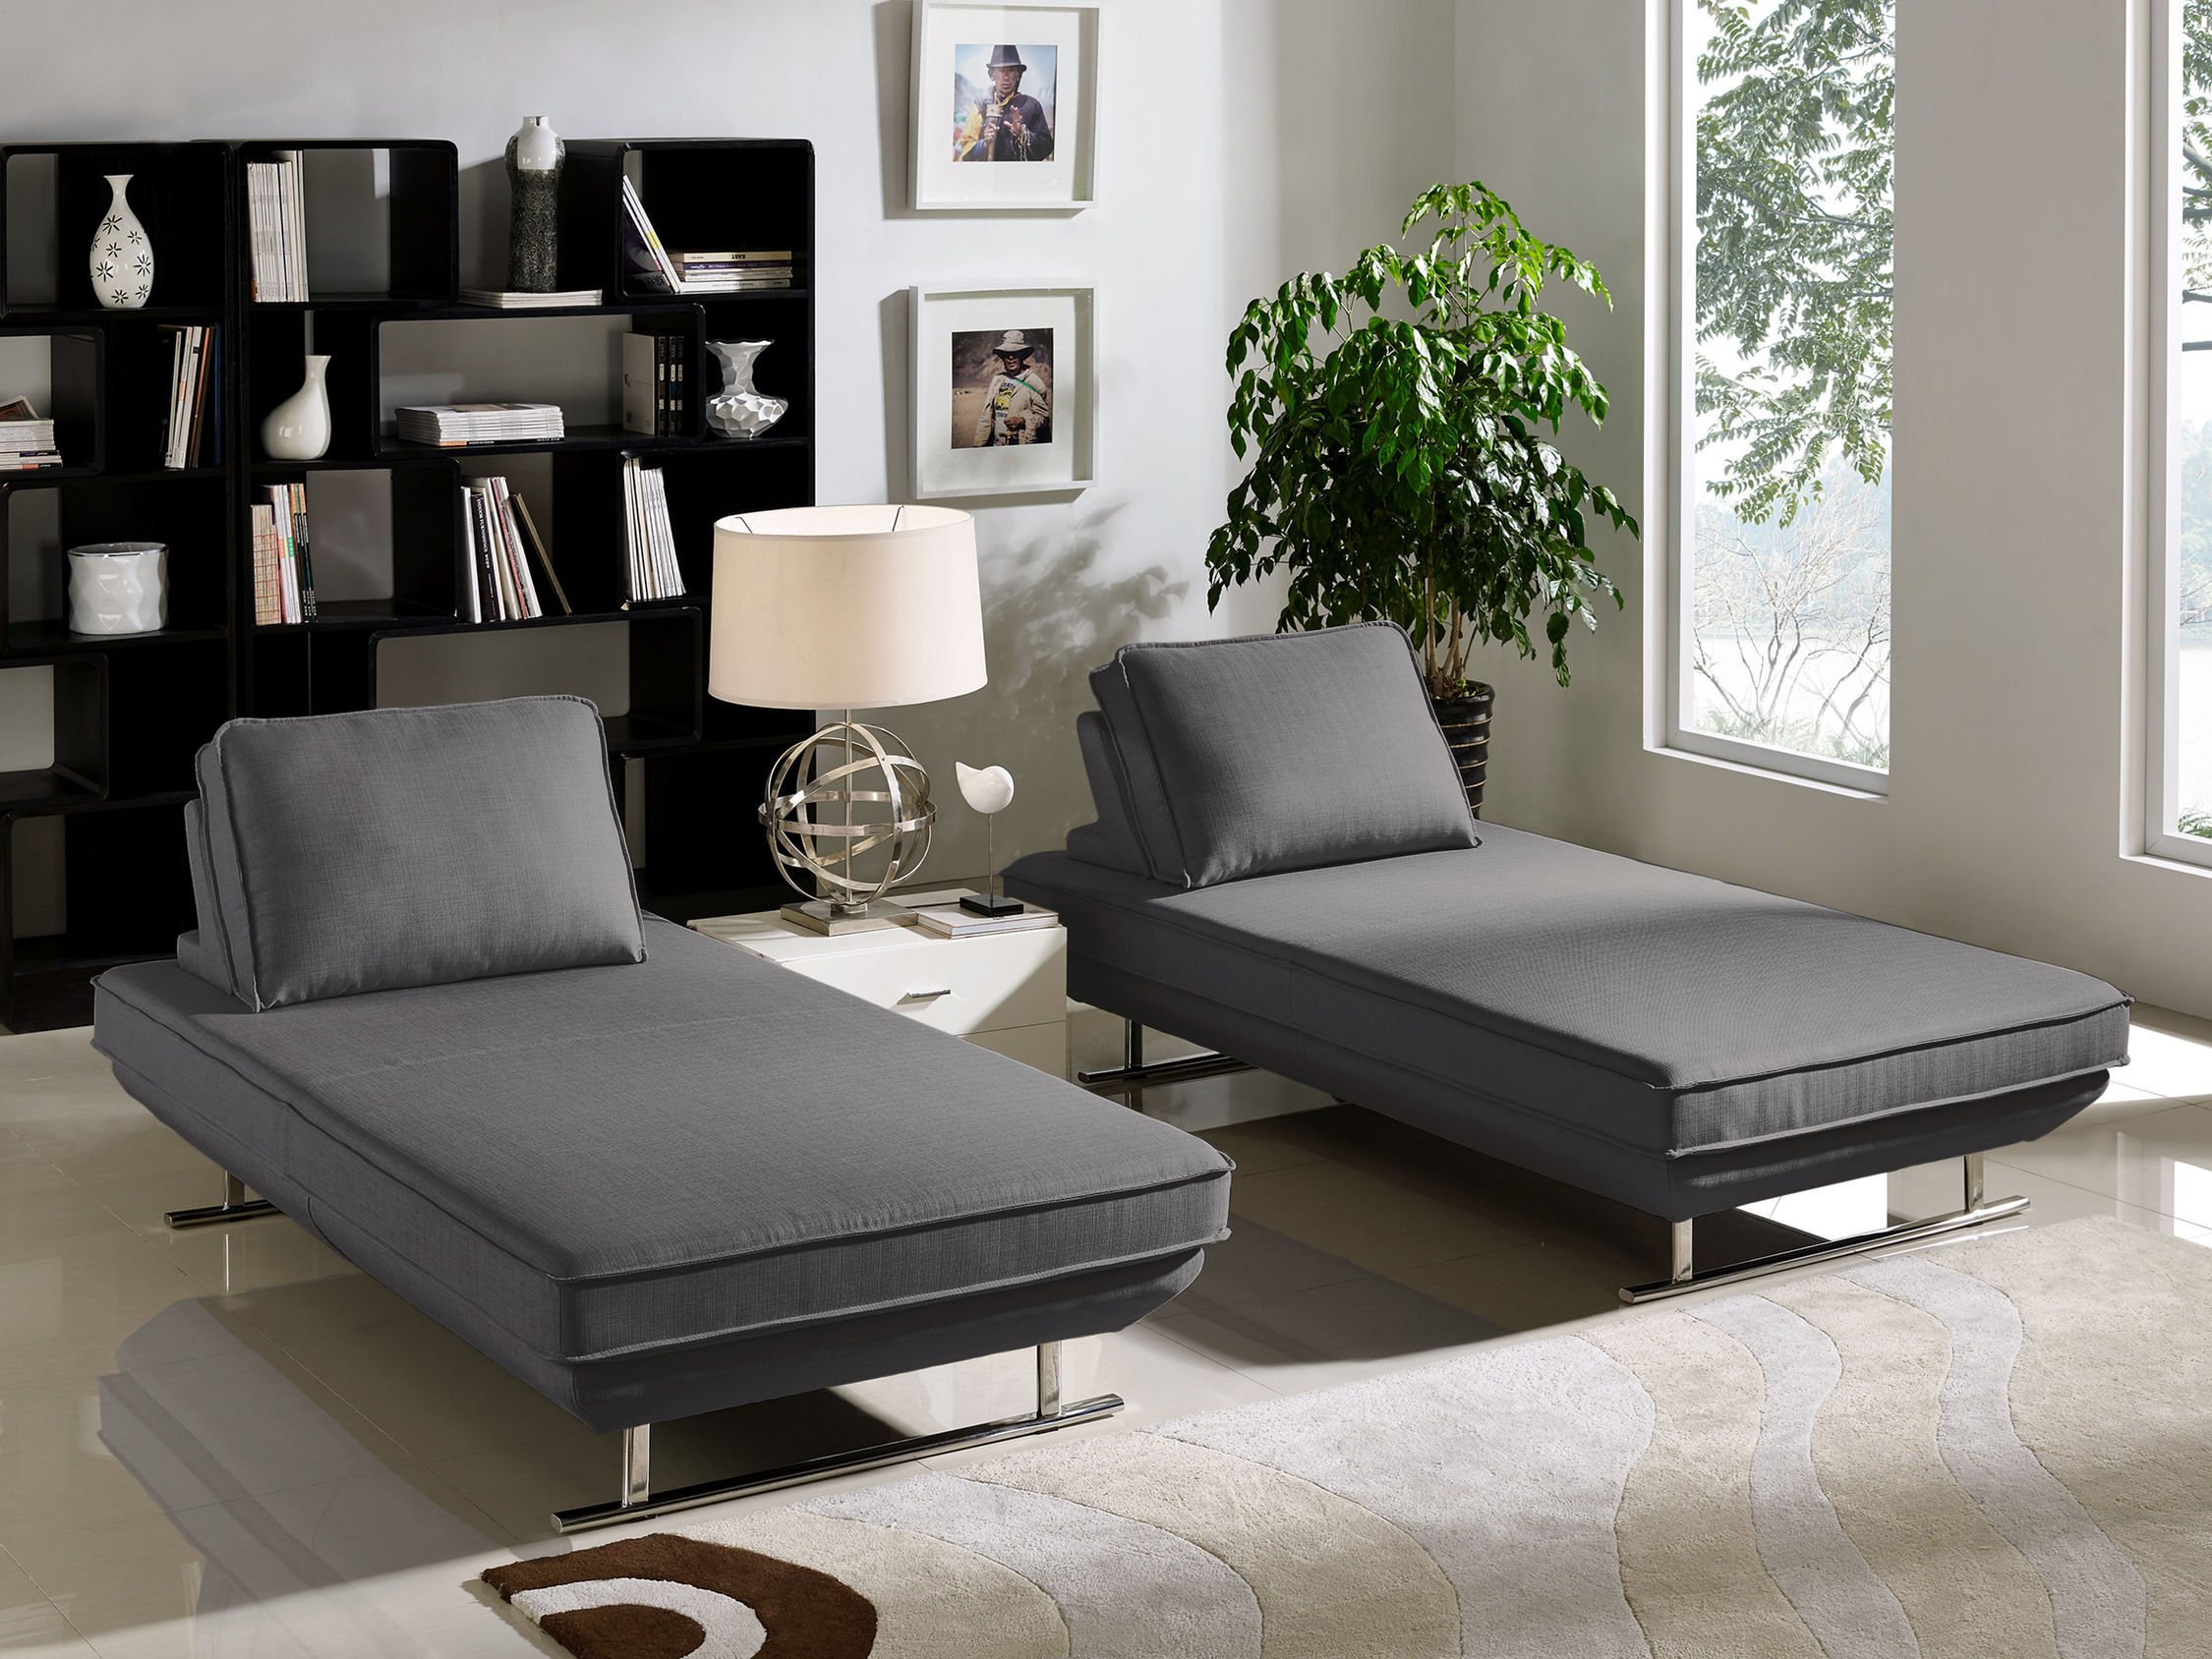 diamond sofa dolce leather melbourne fl 2pc lounge seating platforms with moveable backrest